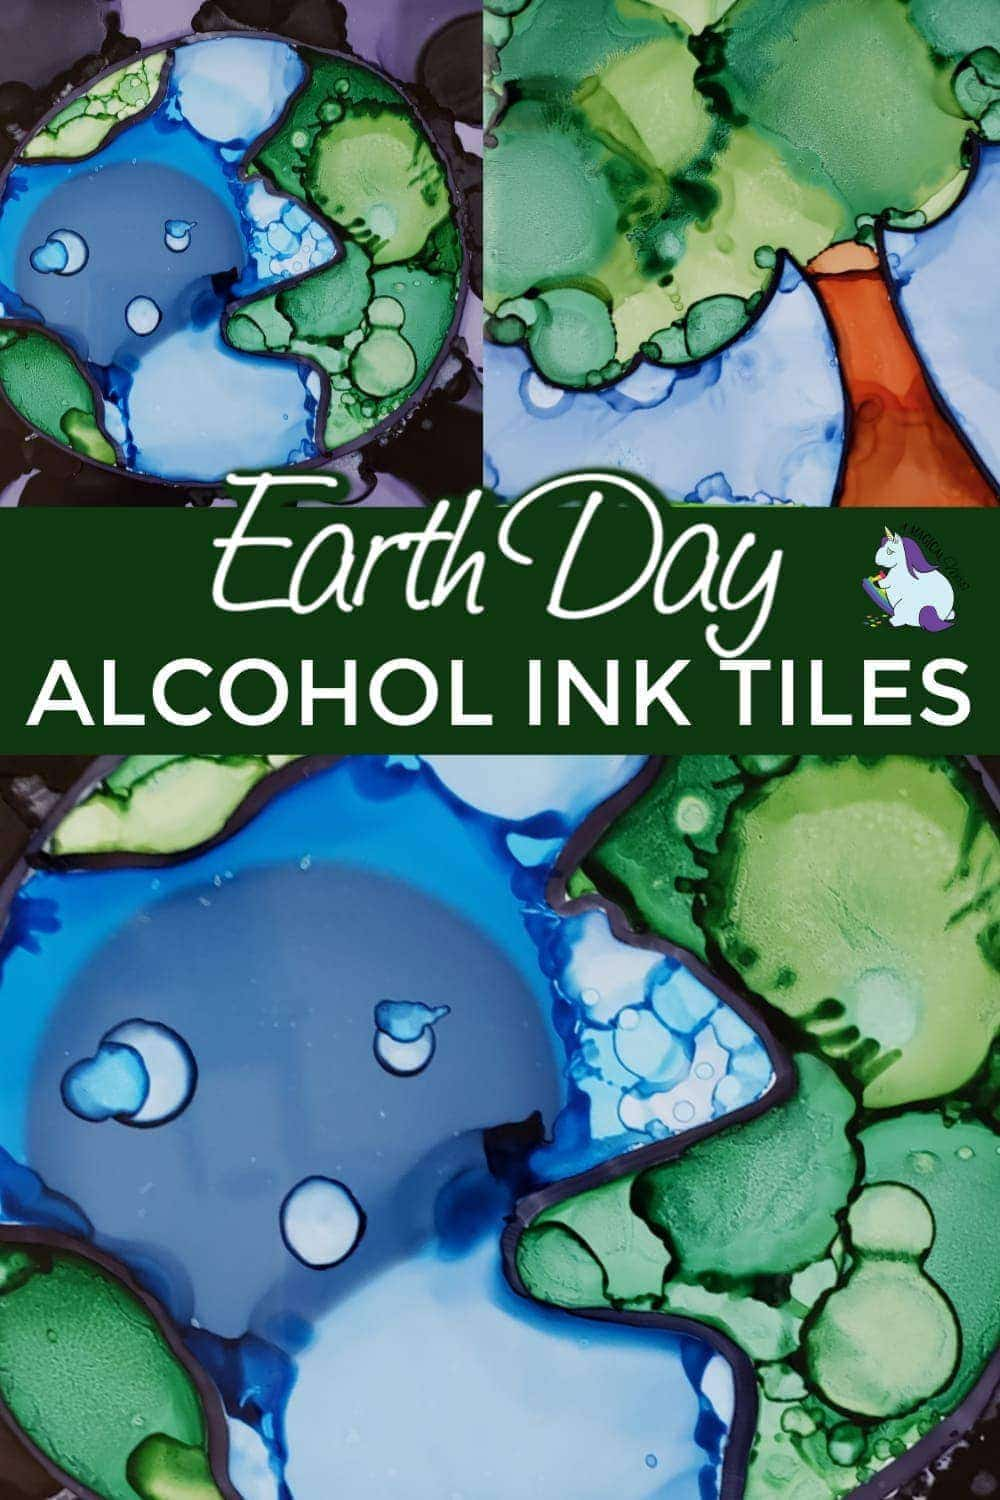 Earth Day craft ideas - Alcohol ink on tiles